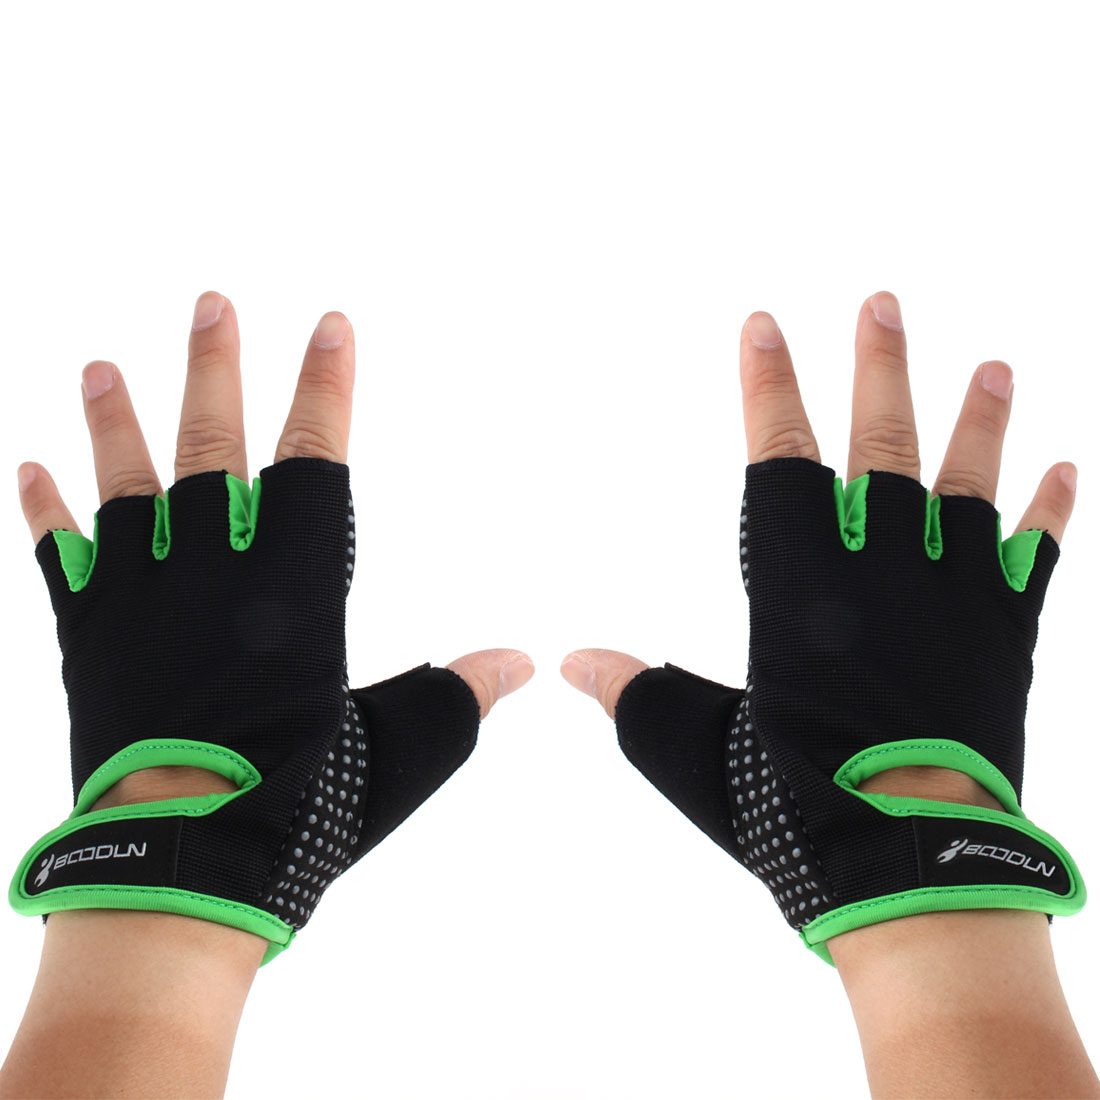 BOODUN Authorized Gym Workout Weight Lifting Training Adjustable Anti Slip Breathable Fitness Half Finger Gloves Green XL Size Pair